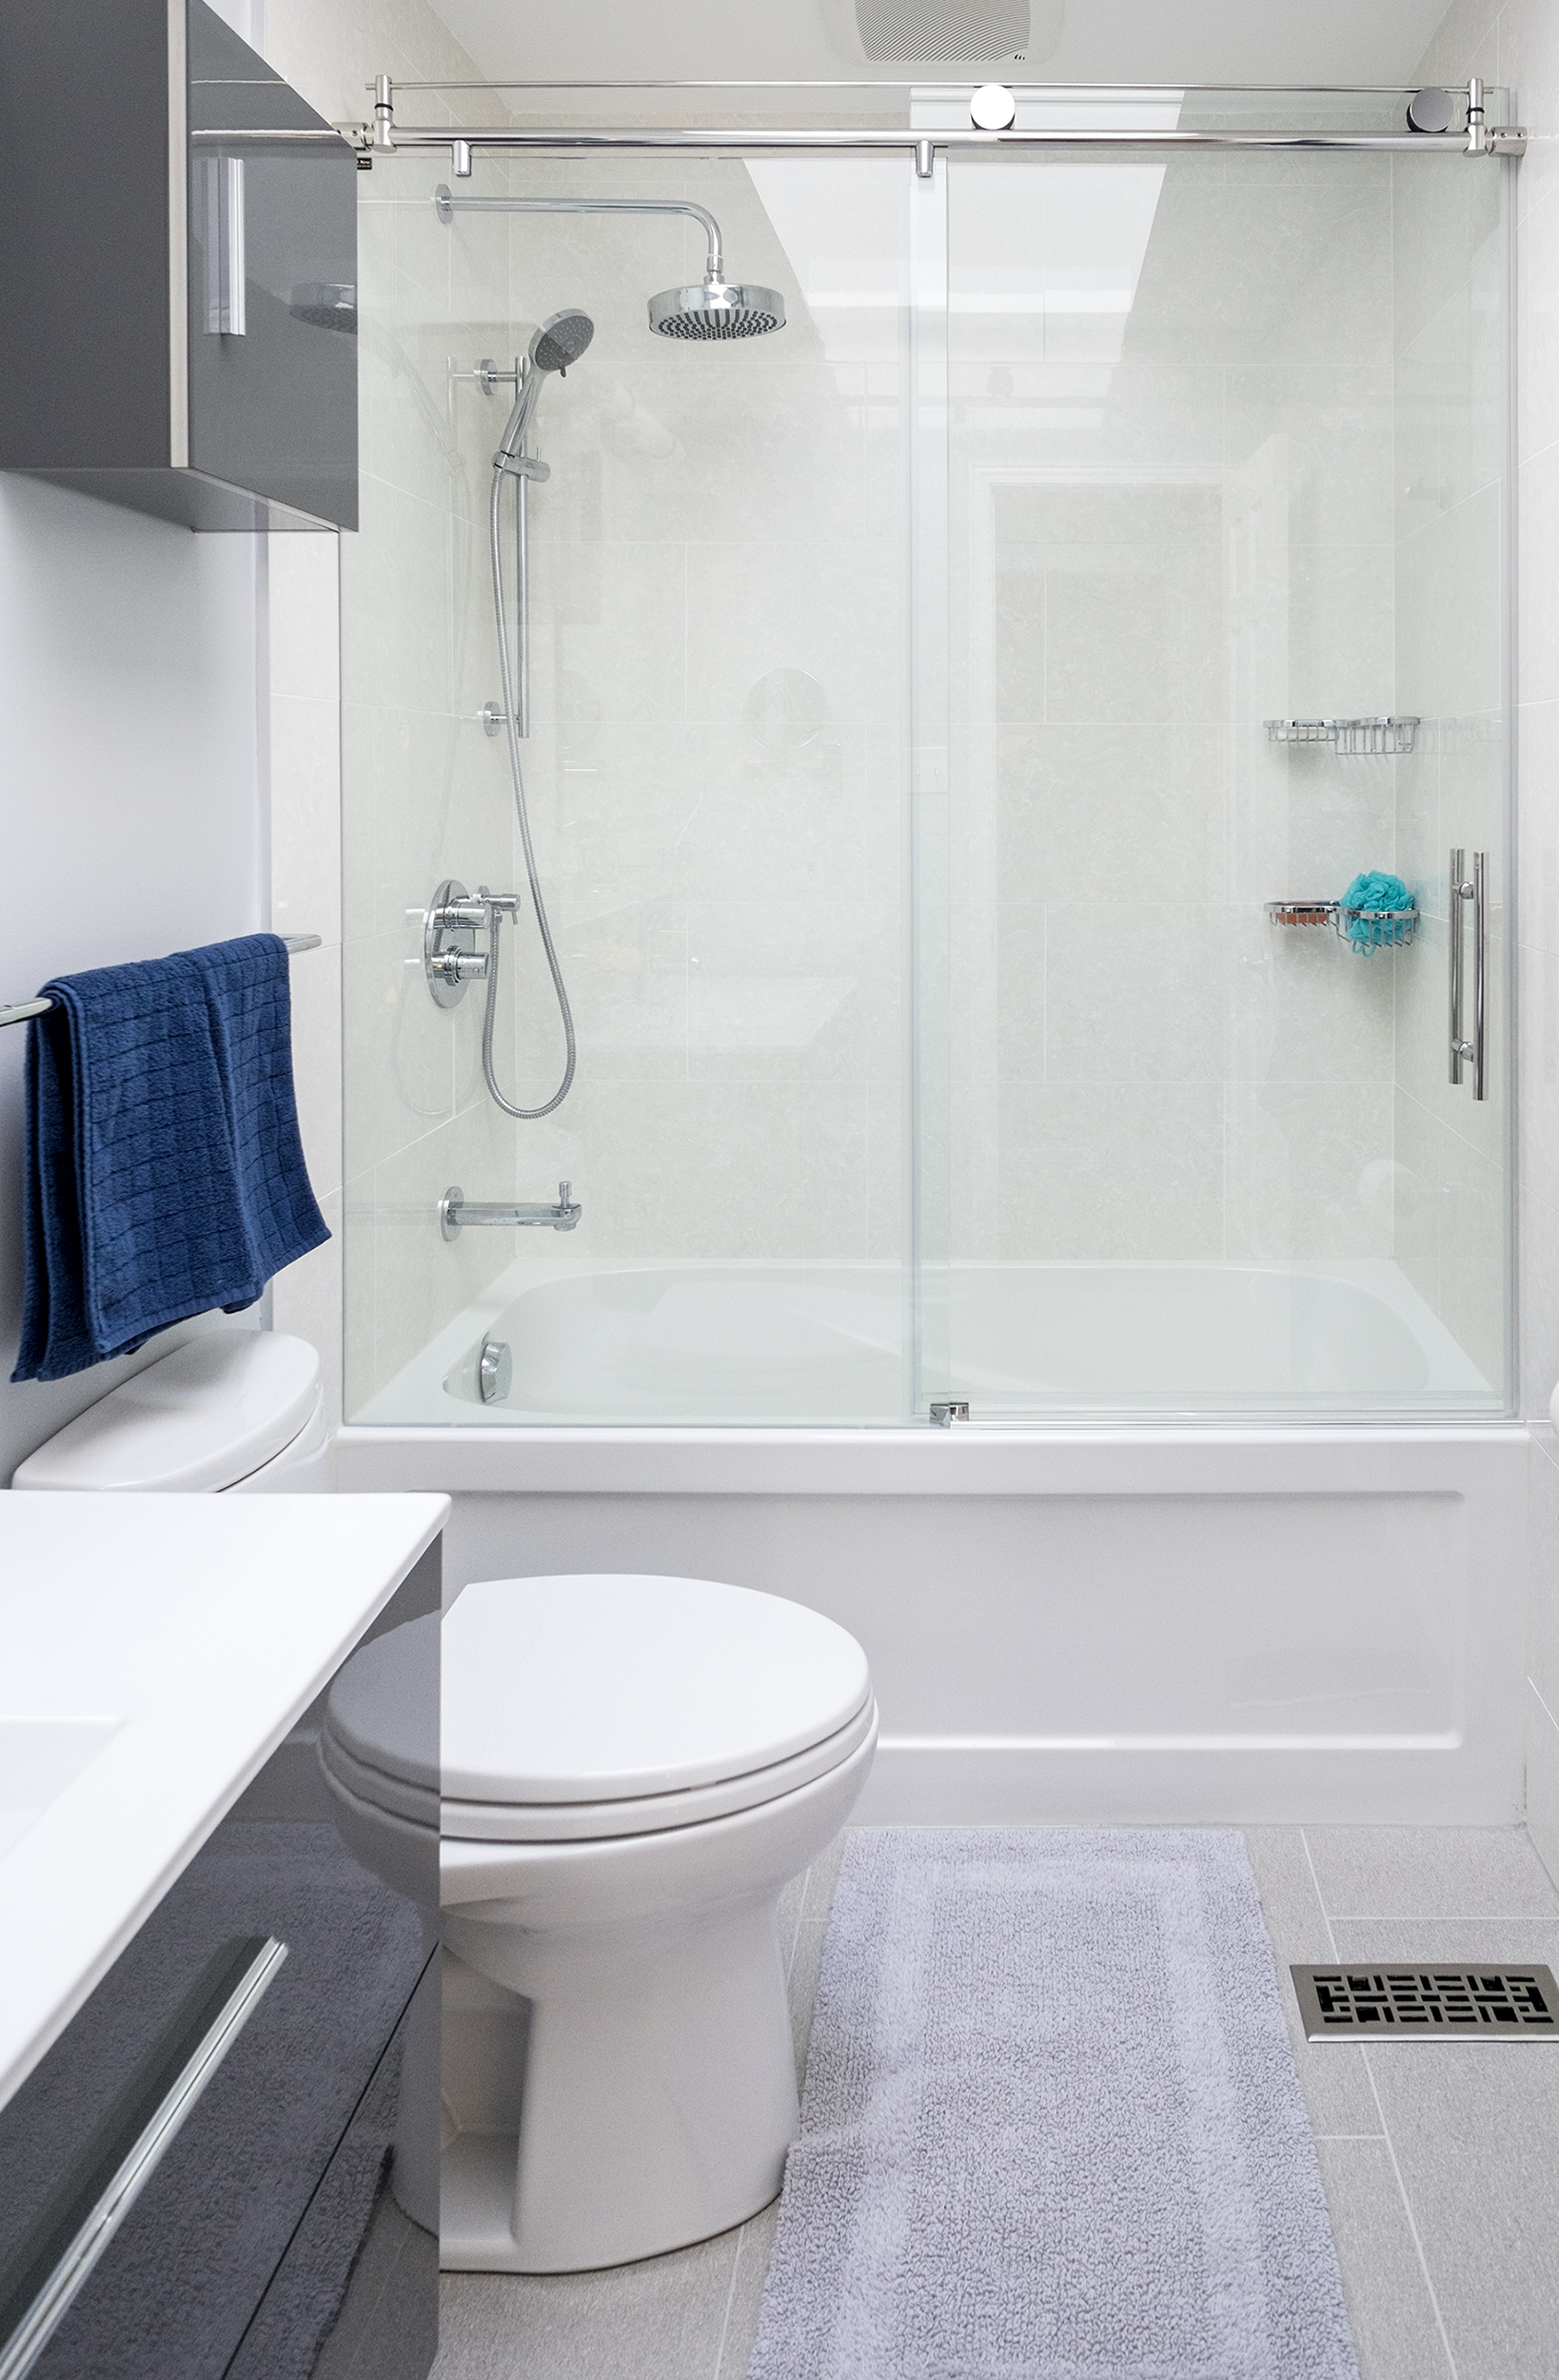 How Much Cost To Remodel A Small Bathroom: Low-Cost Bathroom Remodels